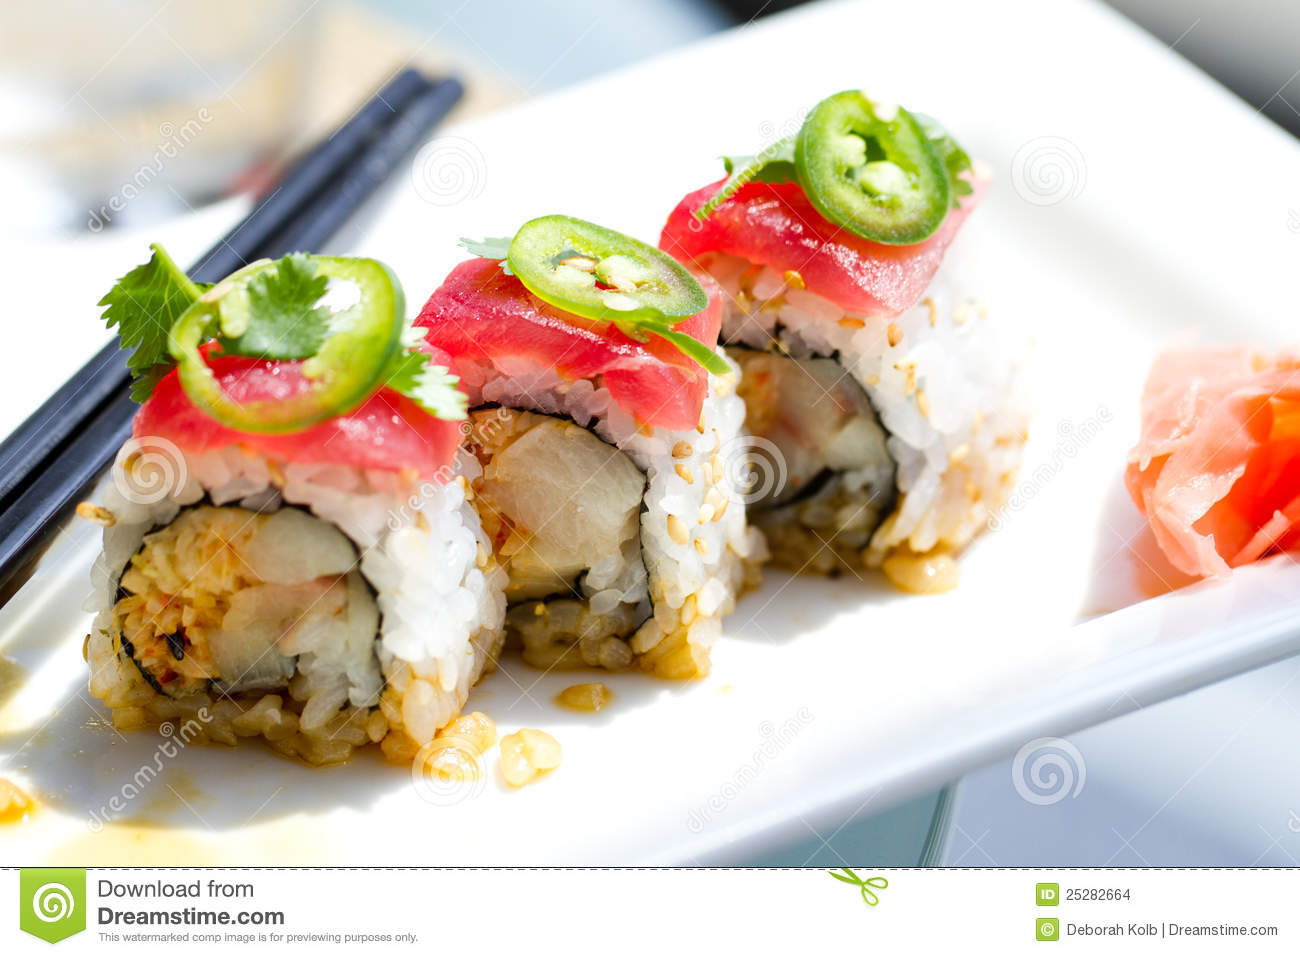 Sushi tuna yellowtail roll stock photos download 289 images for Yellowtail fish sushi